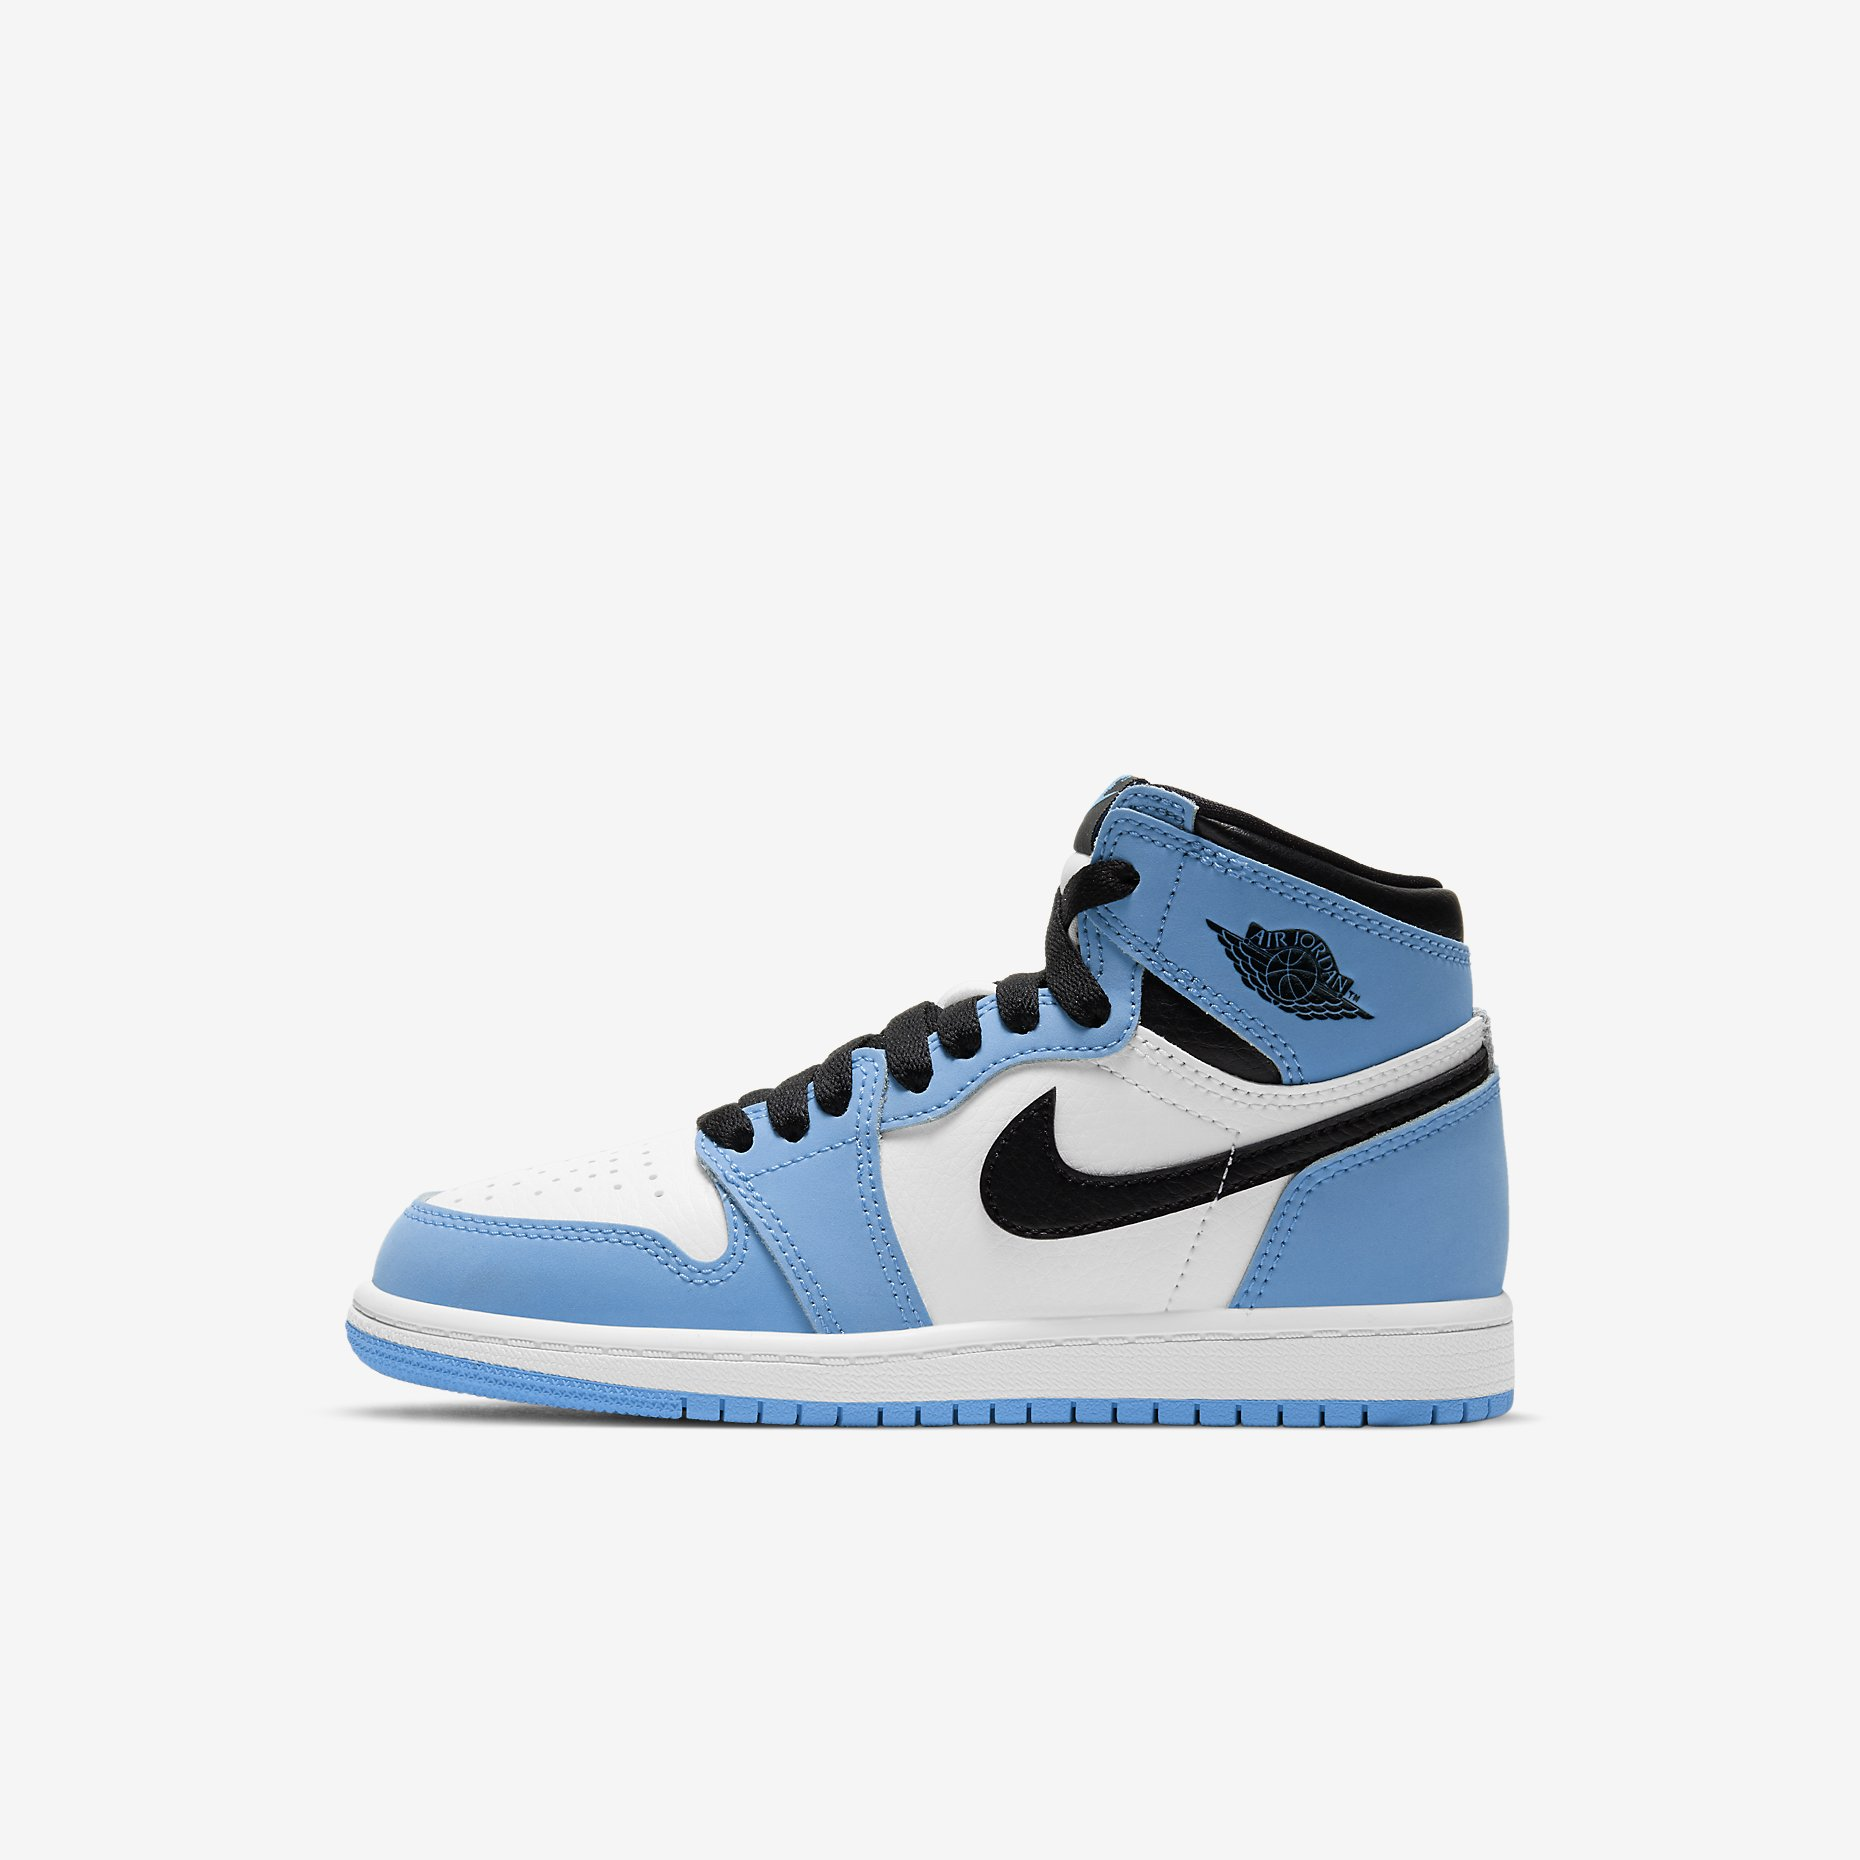 Air Jordan 1 Retro High OG PS 'University Blue'}